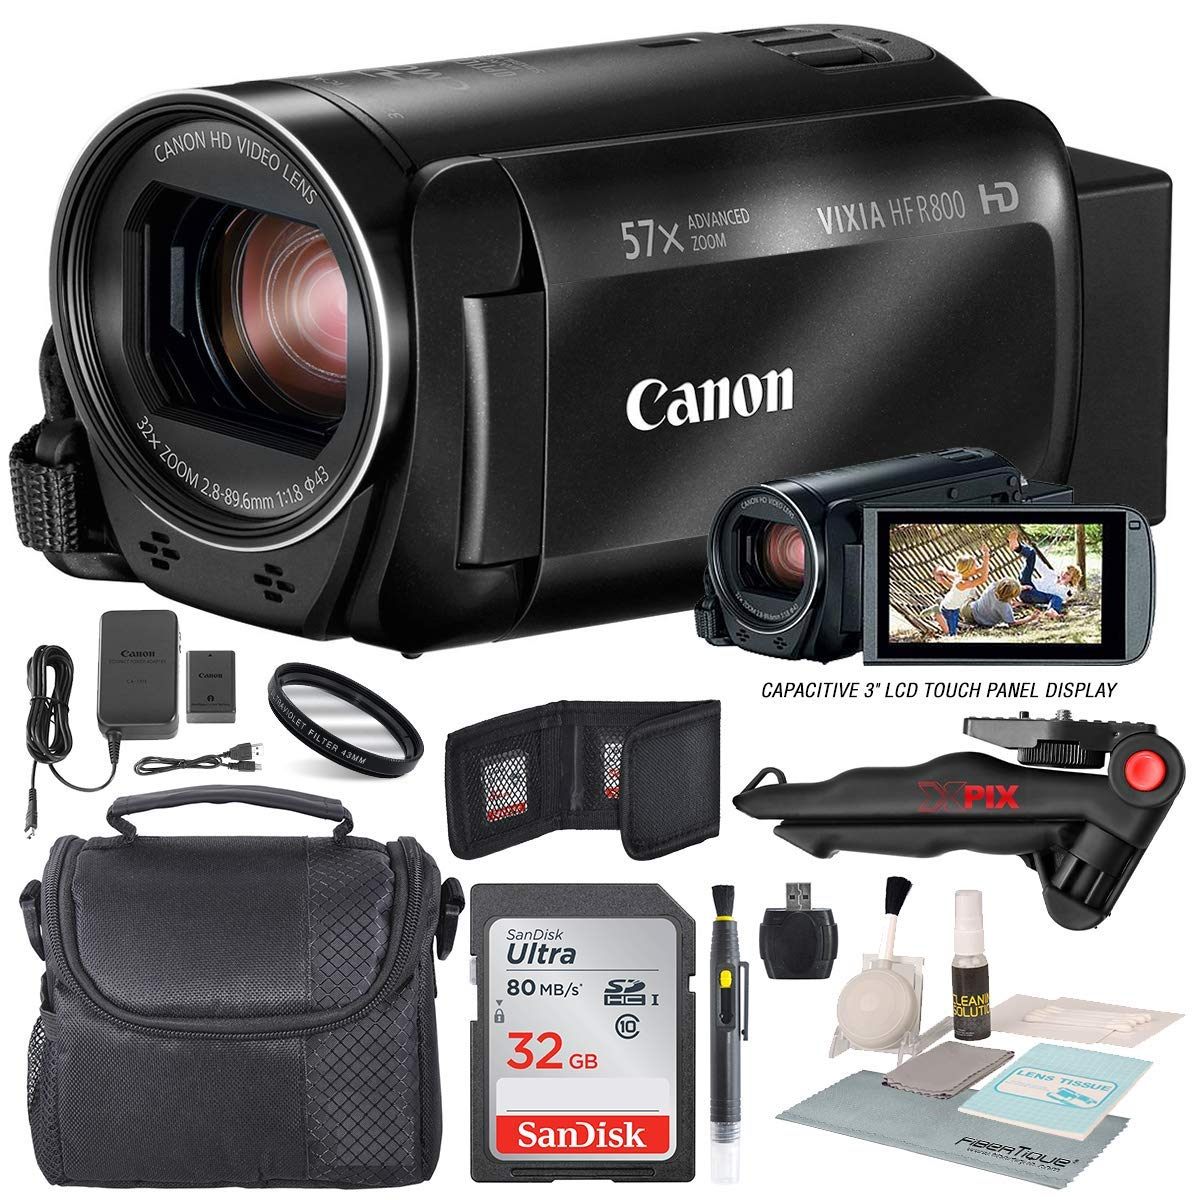 Canon Vixia HF R800 HD Camcorder (Black) Bundle W/ 32GB SD Card, Camcorder Case, Cleaning Accessories and Fibertique Cleaning Cloth by Canon